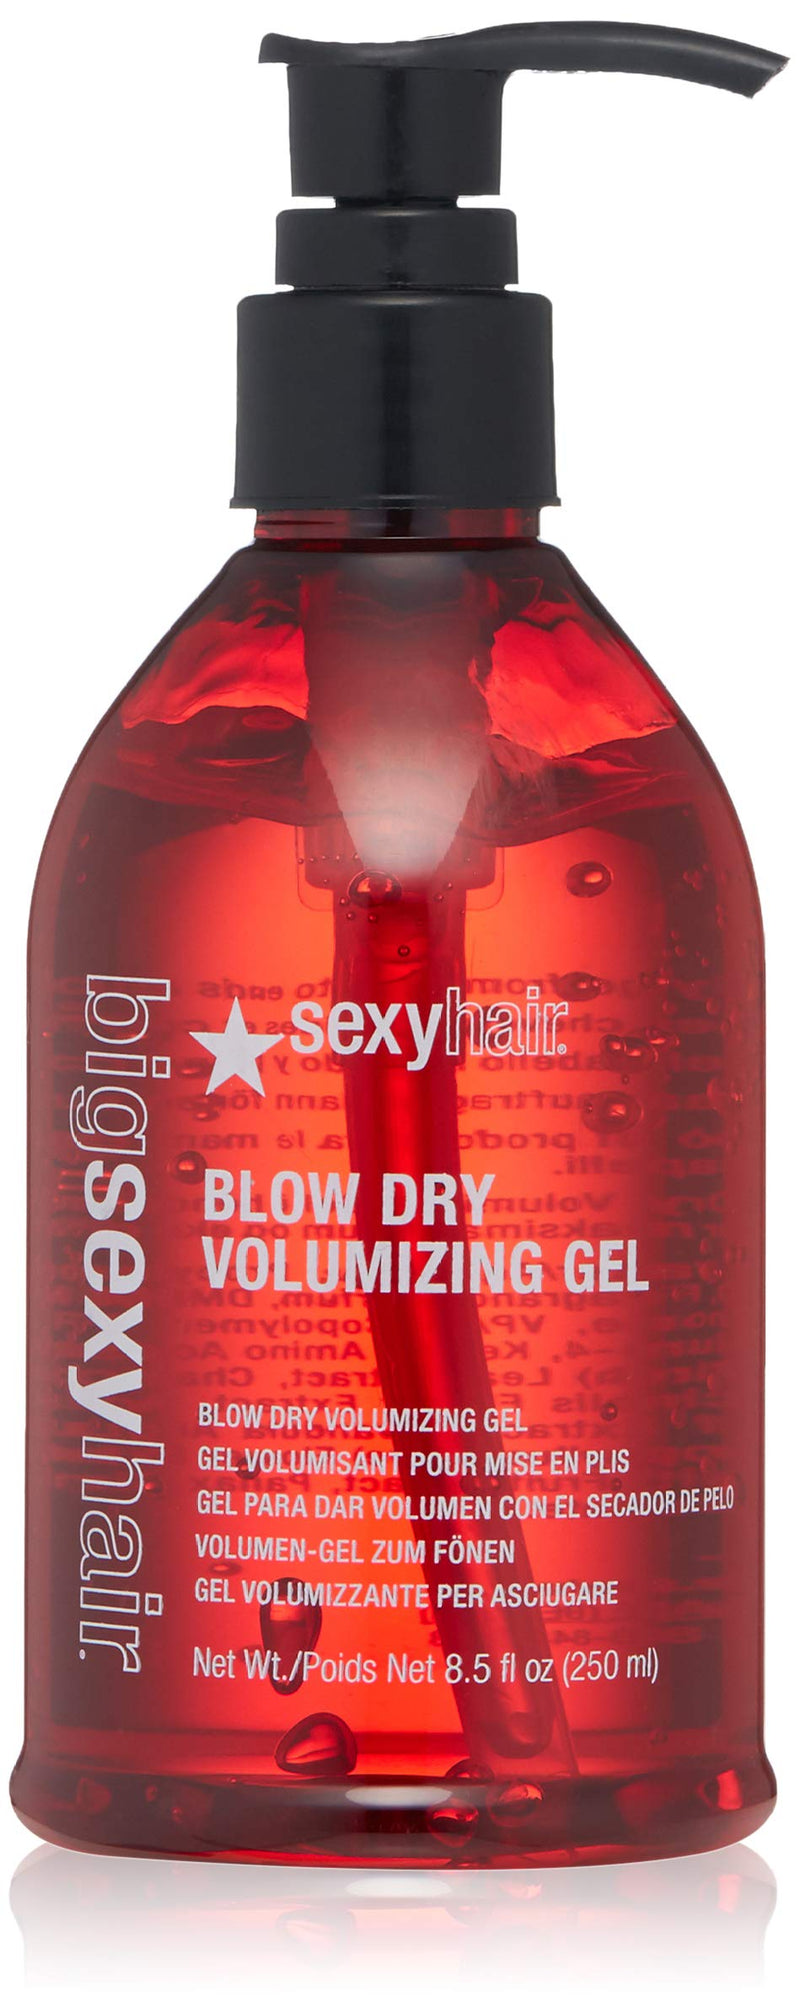 Sexyhair - Blow Dry Volumizing Gel - 8.5 Oz.